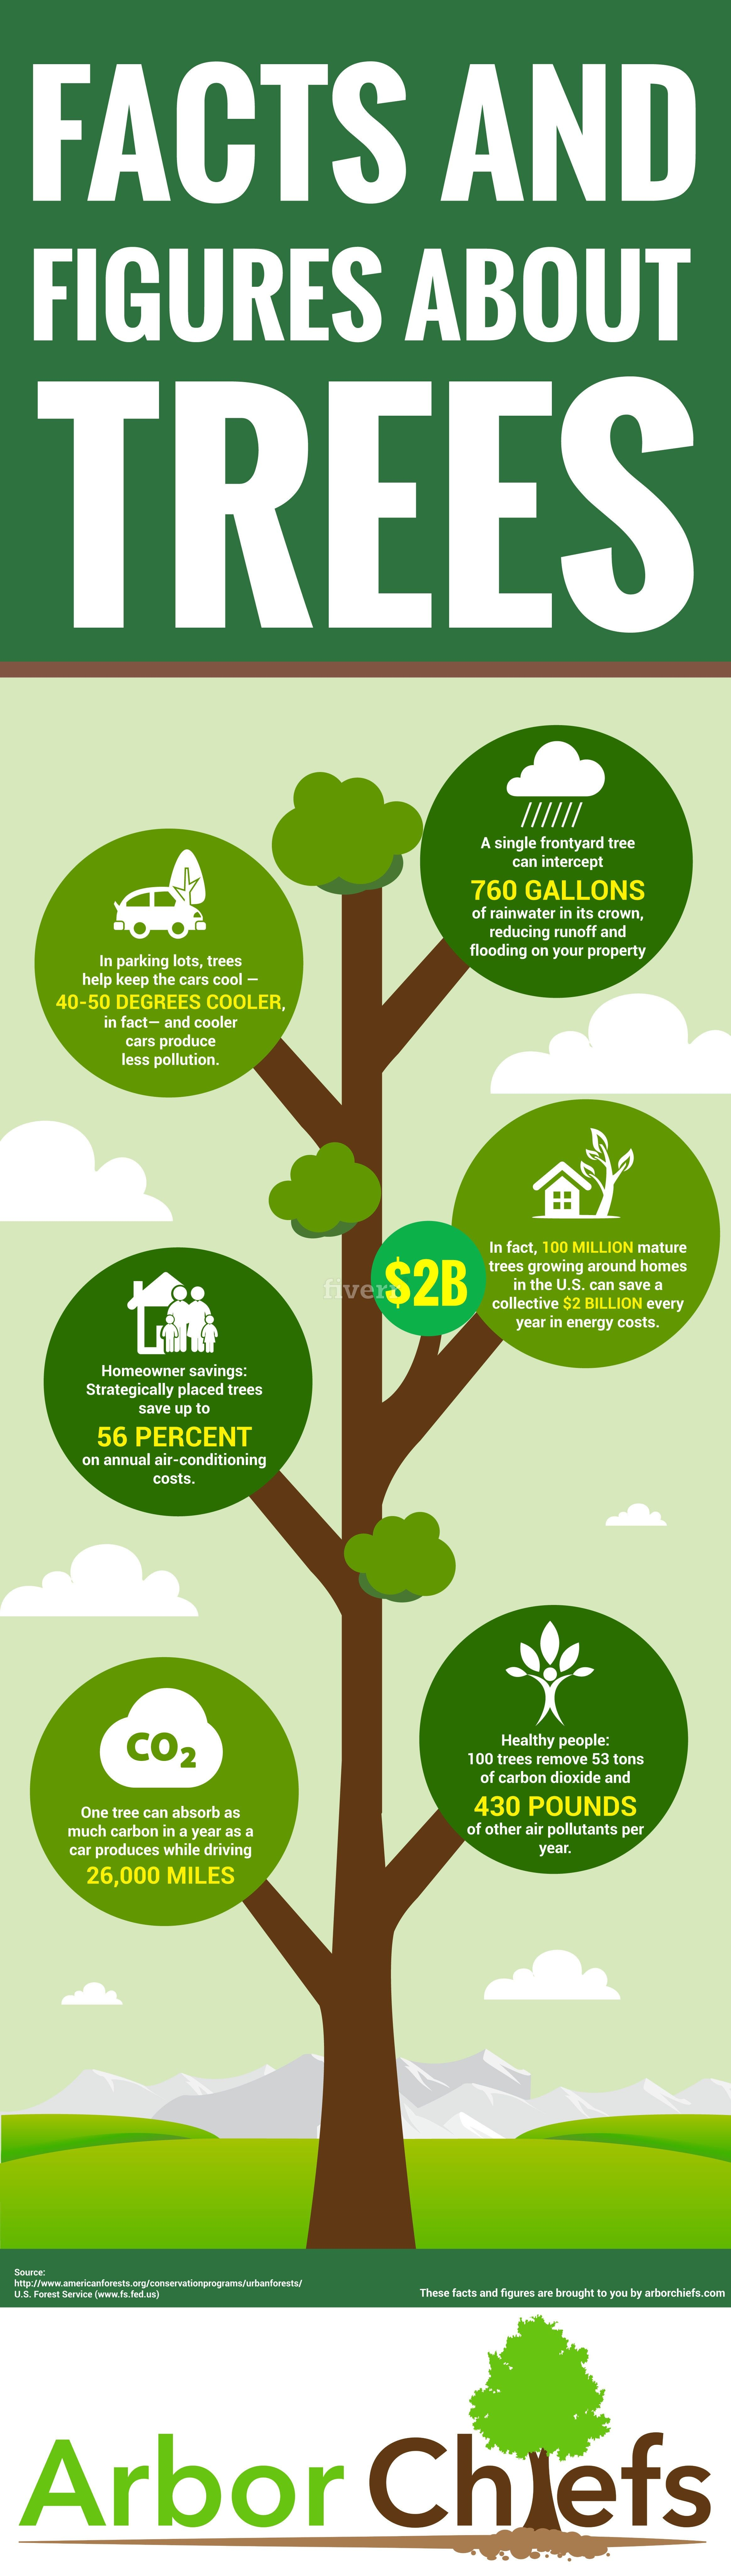 Amazing Facts and Figures About Trees Infographic Facts